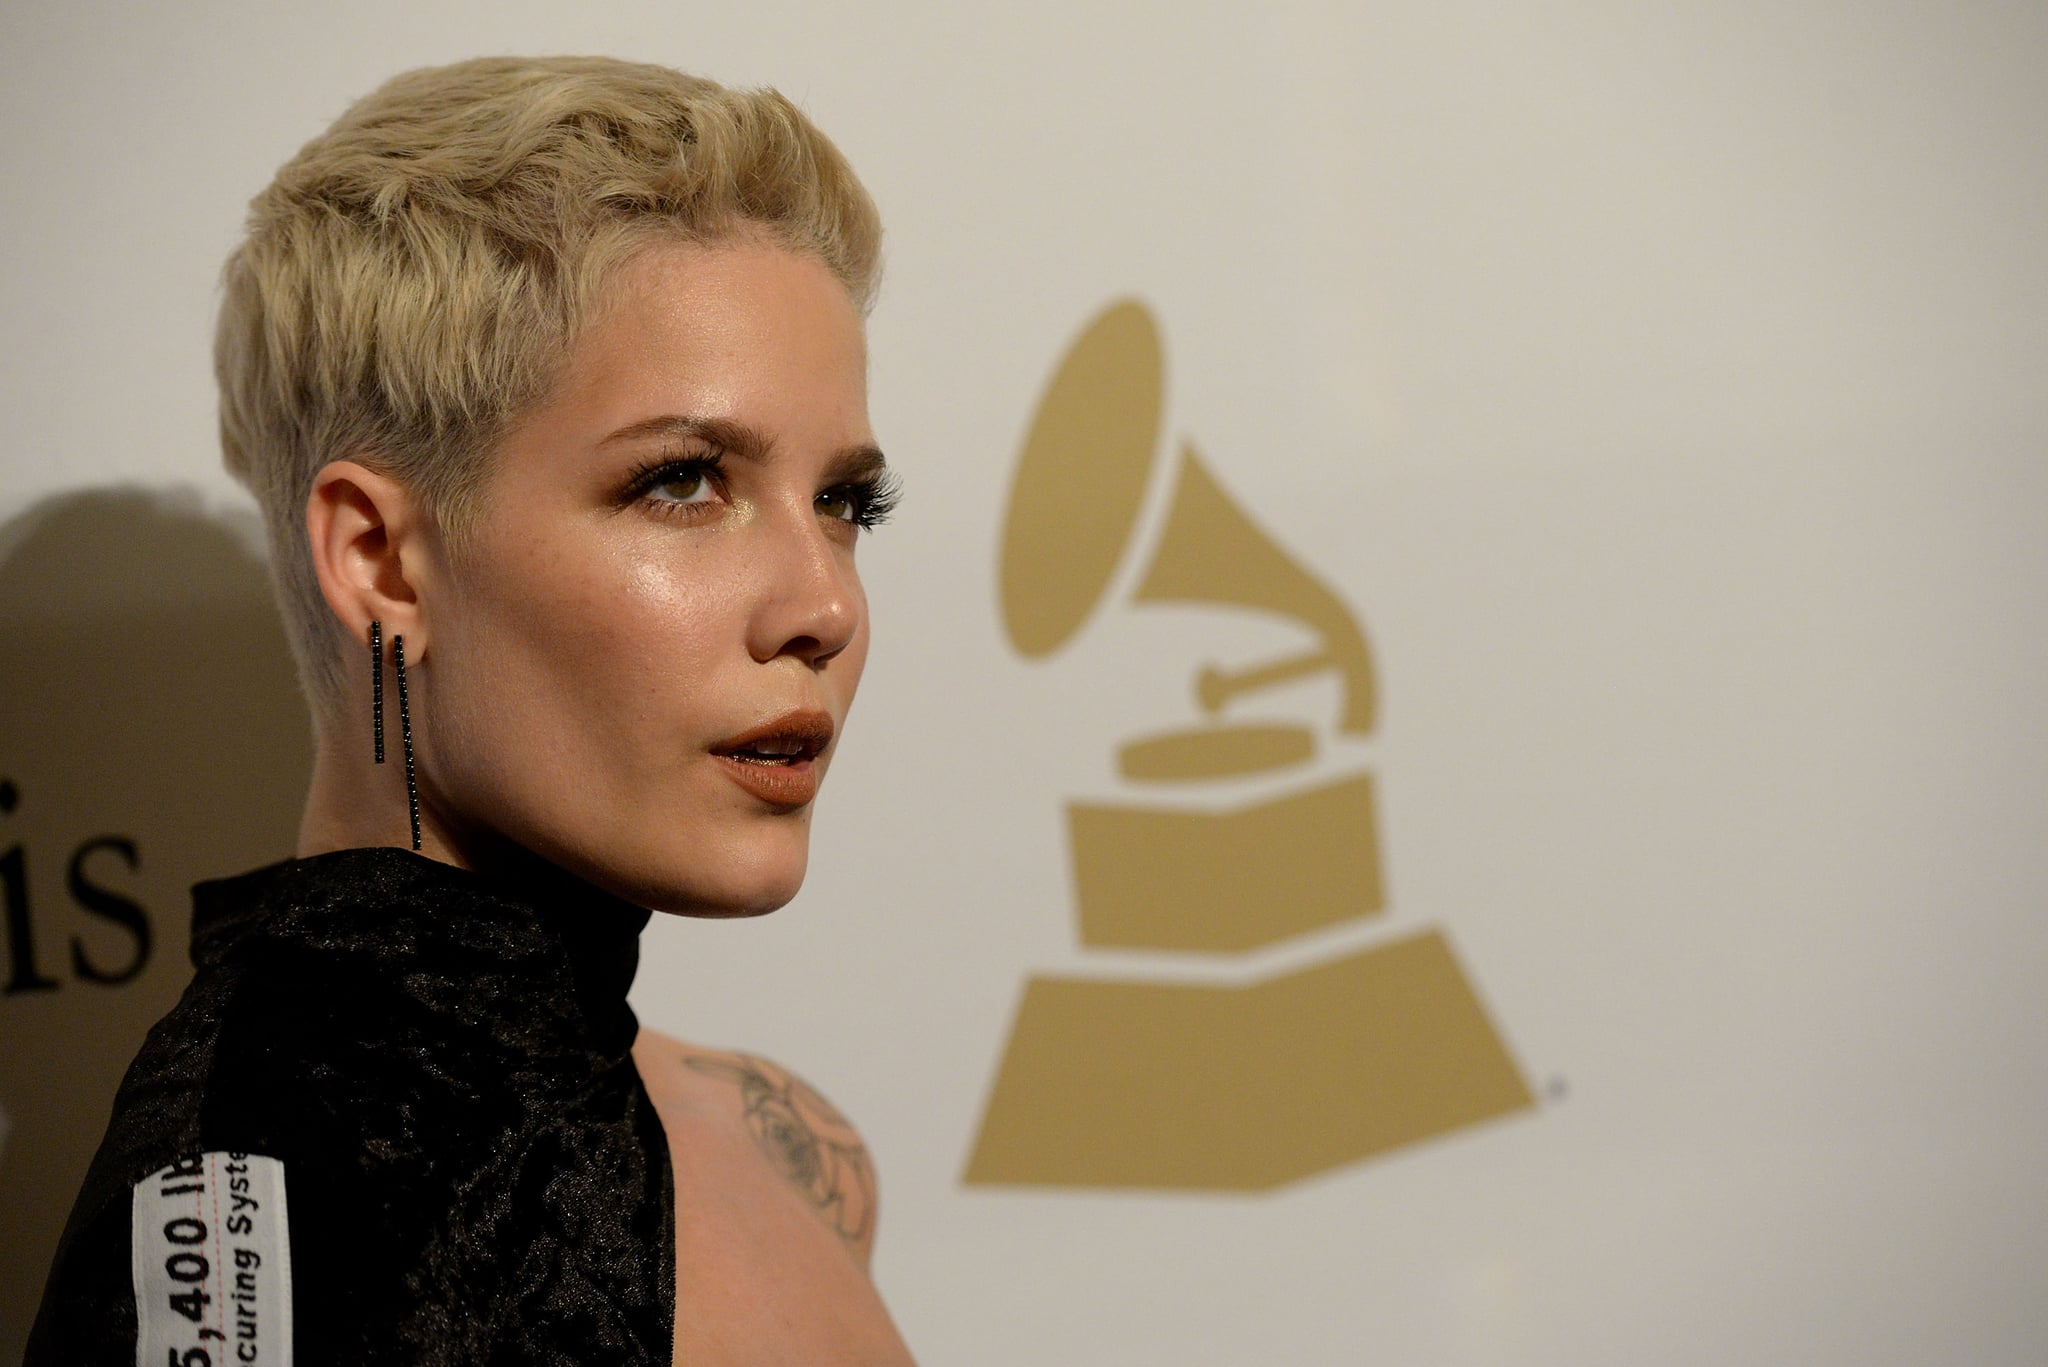 BEVERLY HILLS, CA - FEBRUARY 11:  Singer Halsey walks the red carpet at the 2017 Pre-GRAMMY Gala And Salute to Industry Icons Honoring Debra Lee at The Beverly Hilton Hotel on February 11, 2017 in Beverly Hills, California.  (Photo by Scott Dudelson/Getty Images)